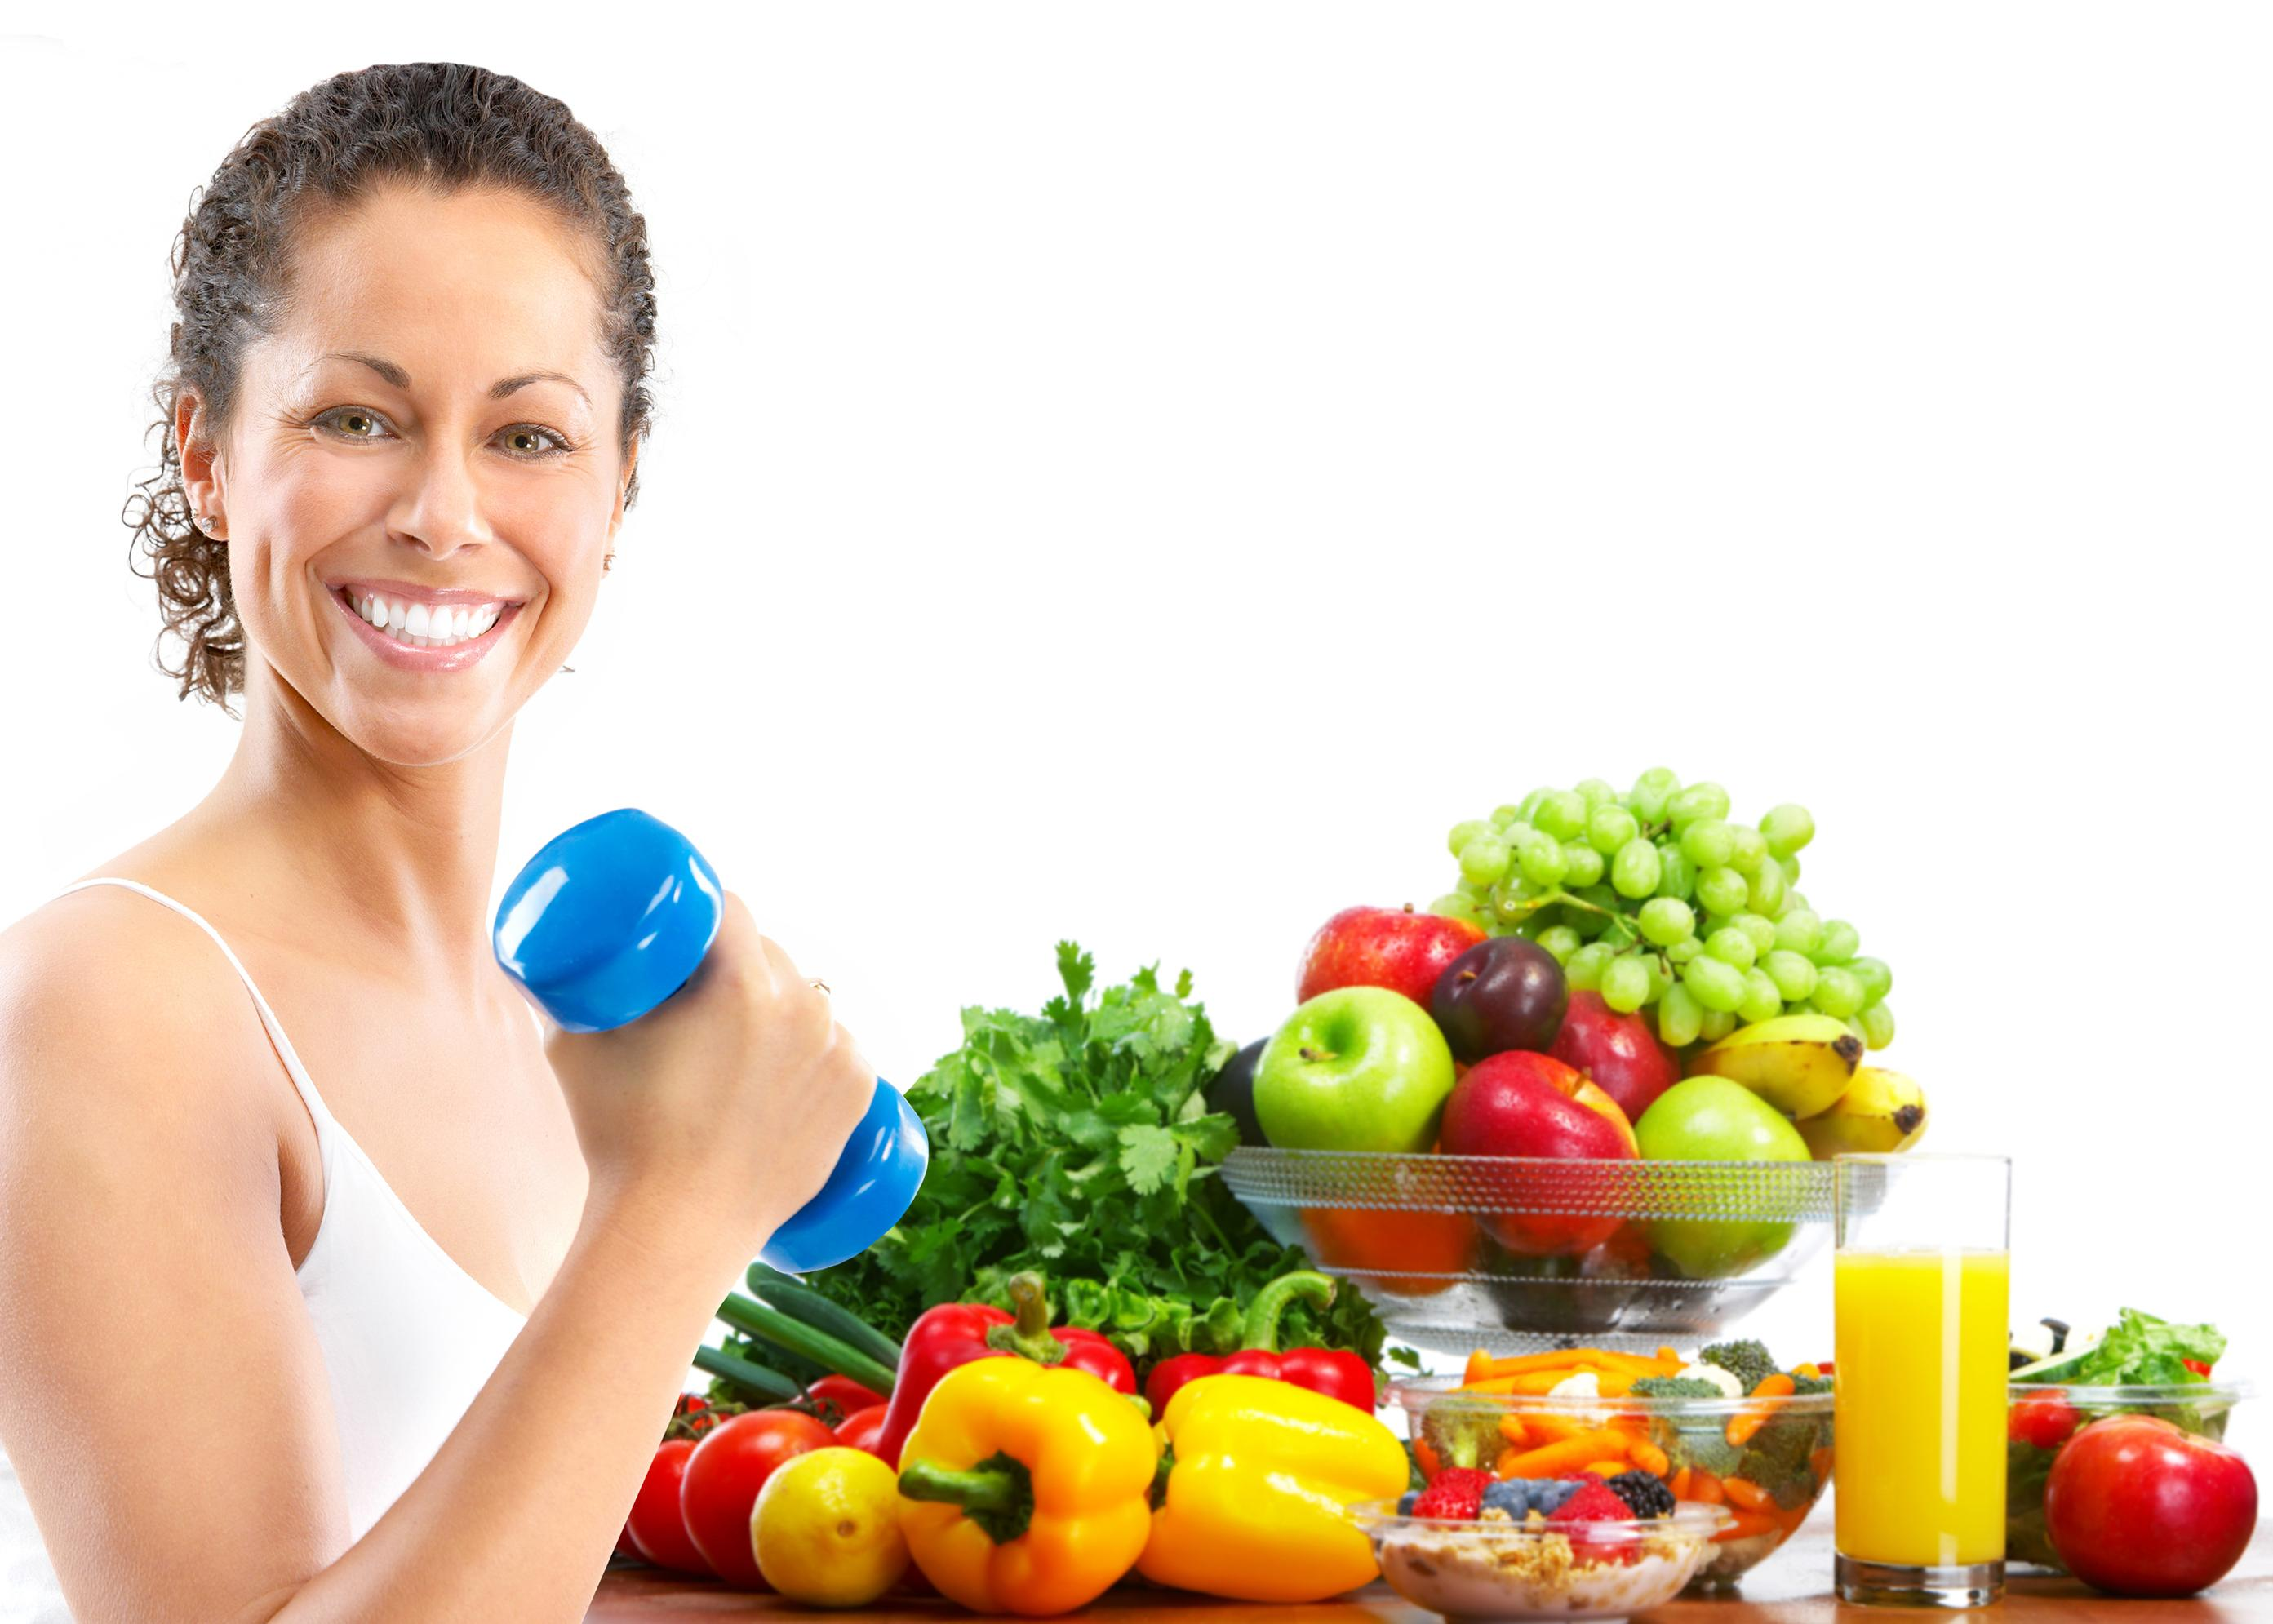 5 Simple Steps To A Healthier Lifestyle | HuffPost